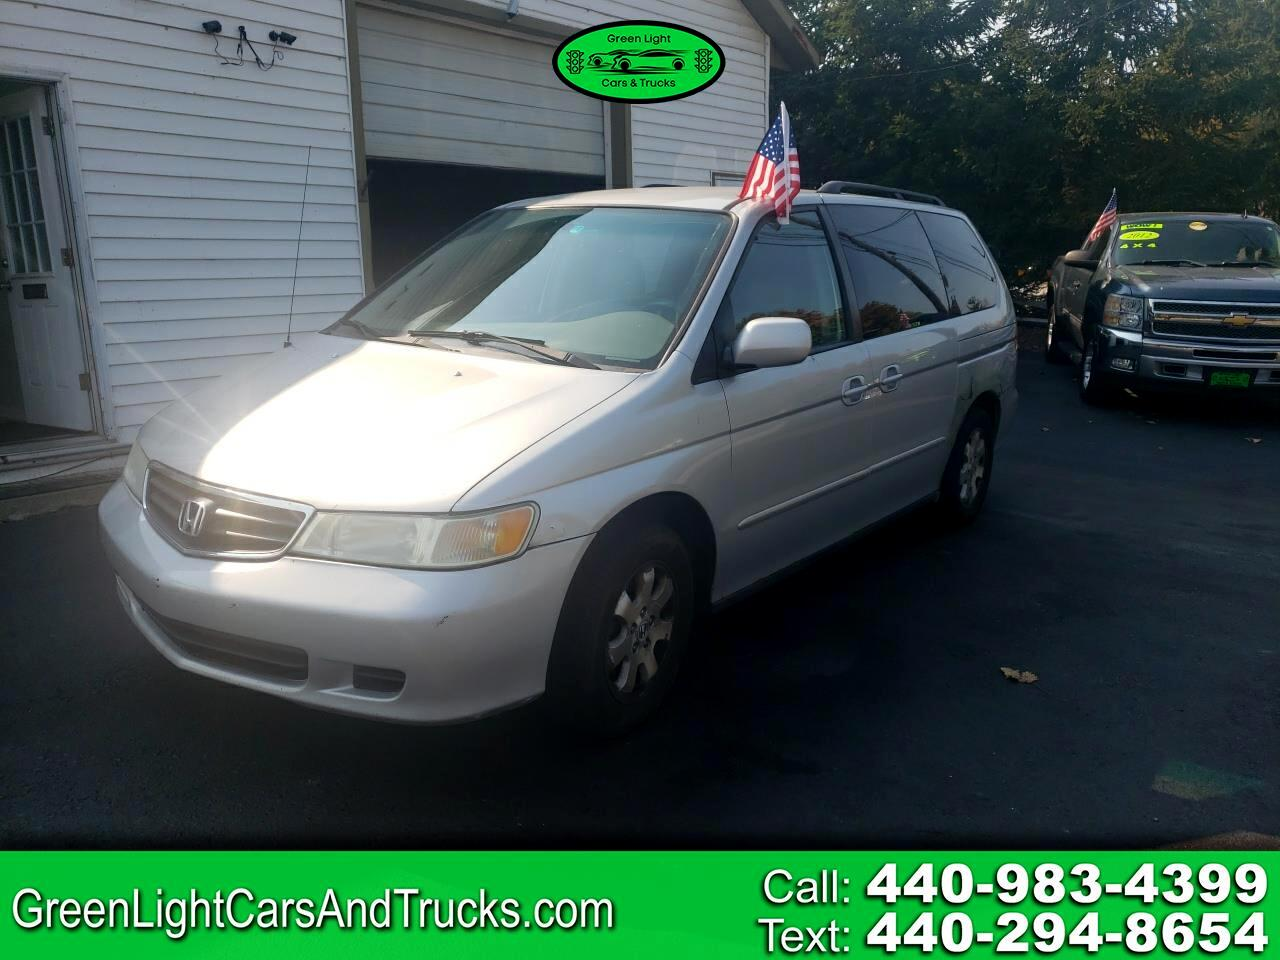 used 2004 honda odyssey 5dr ex l navi w navigation leather for sale in madison oh 44057 green light cars trucks starr s cars truck inc